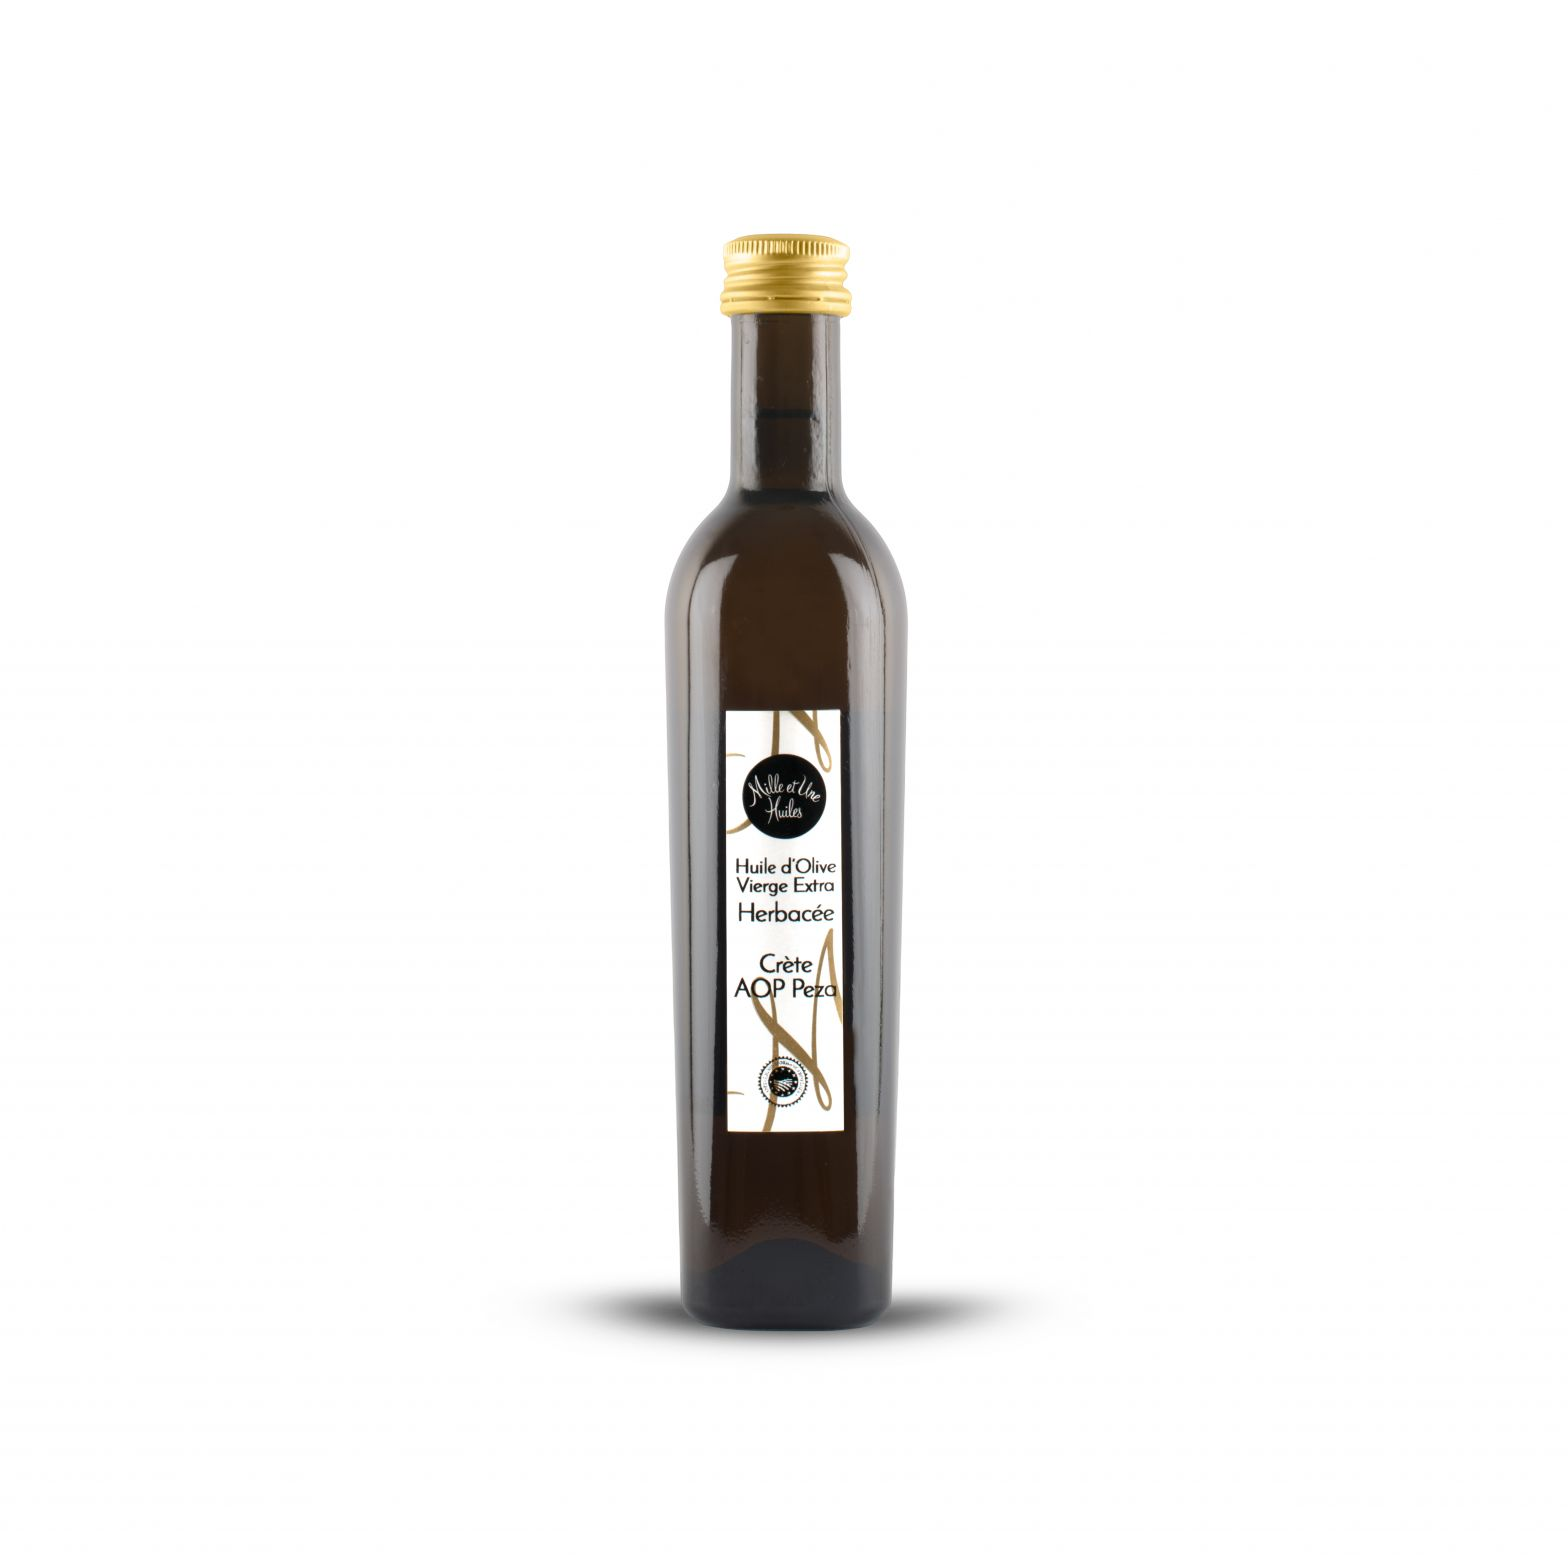 Extra virgin olive oil green selection, Crete PDO Peza